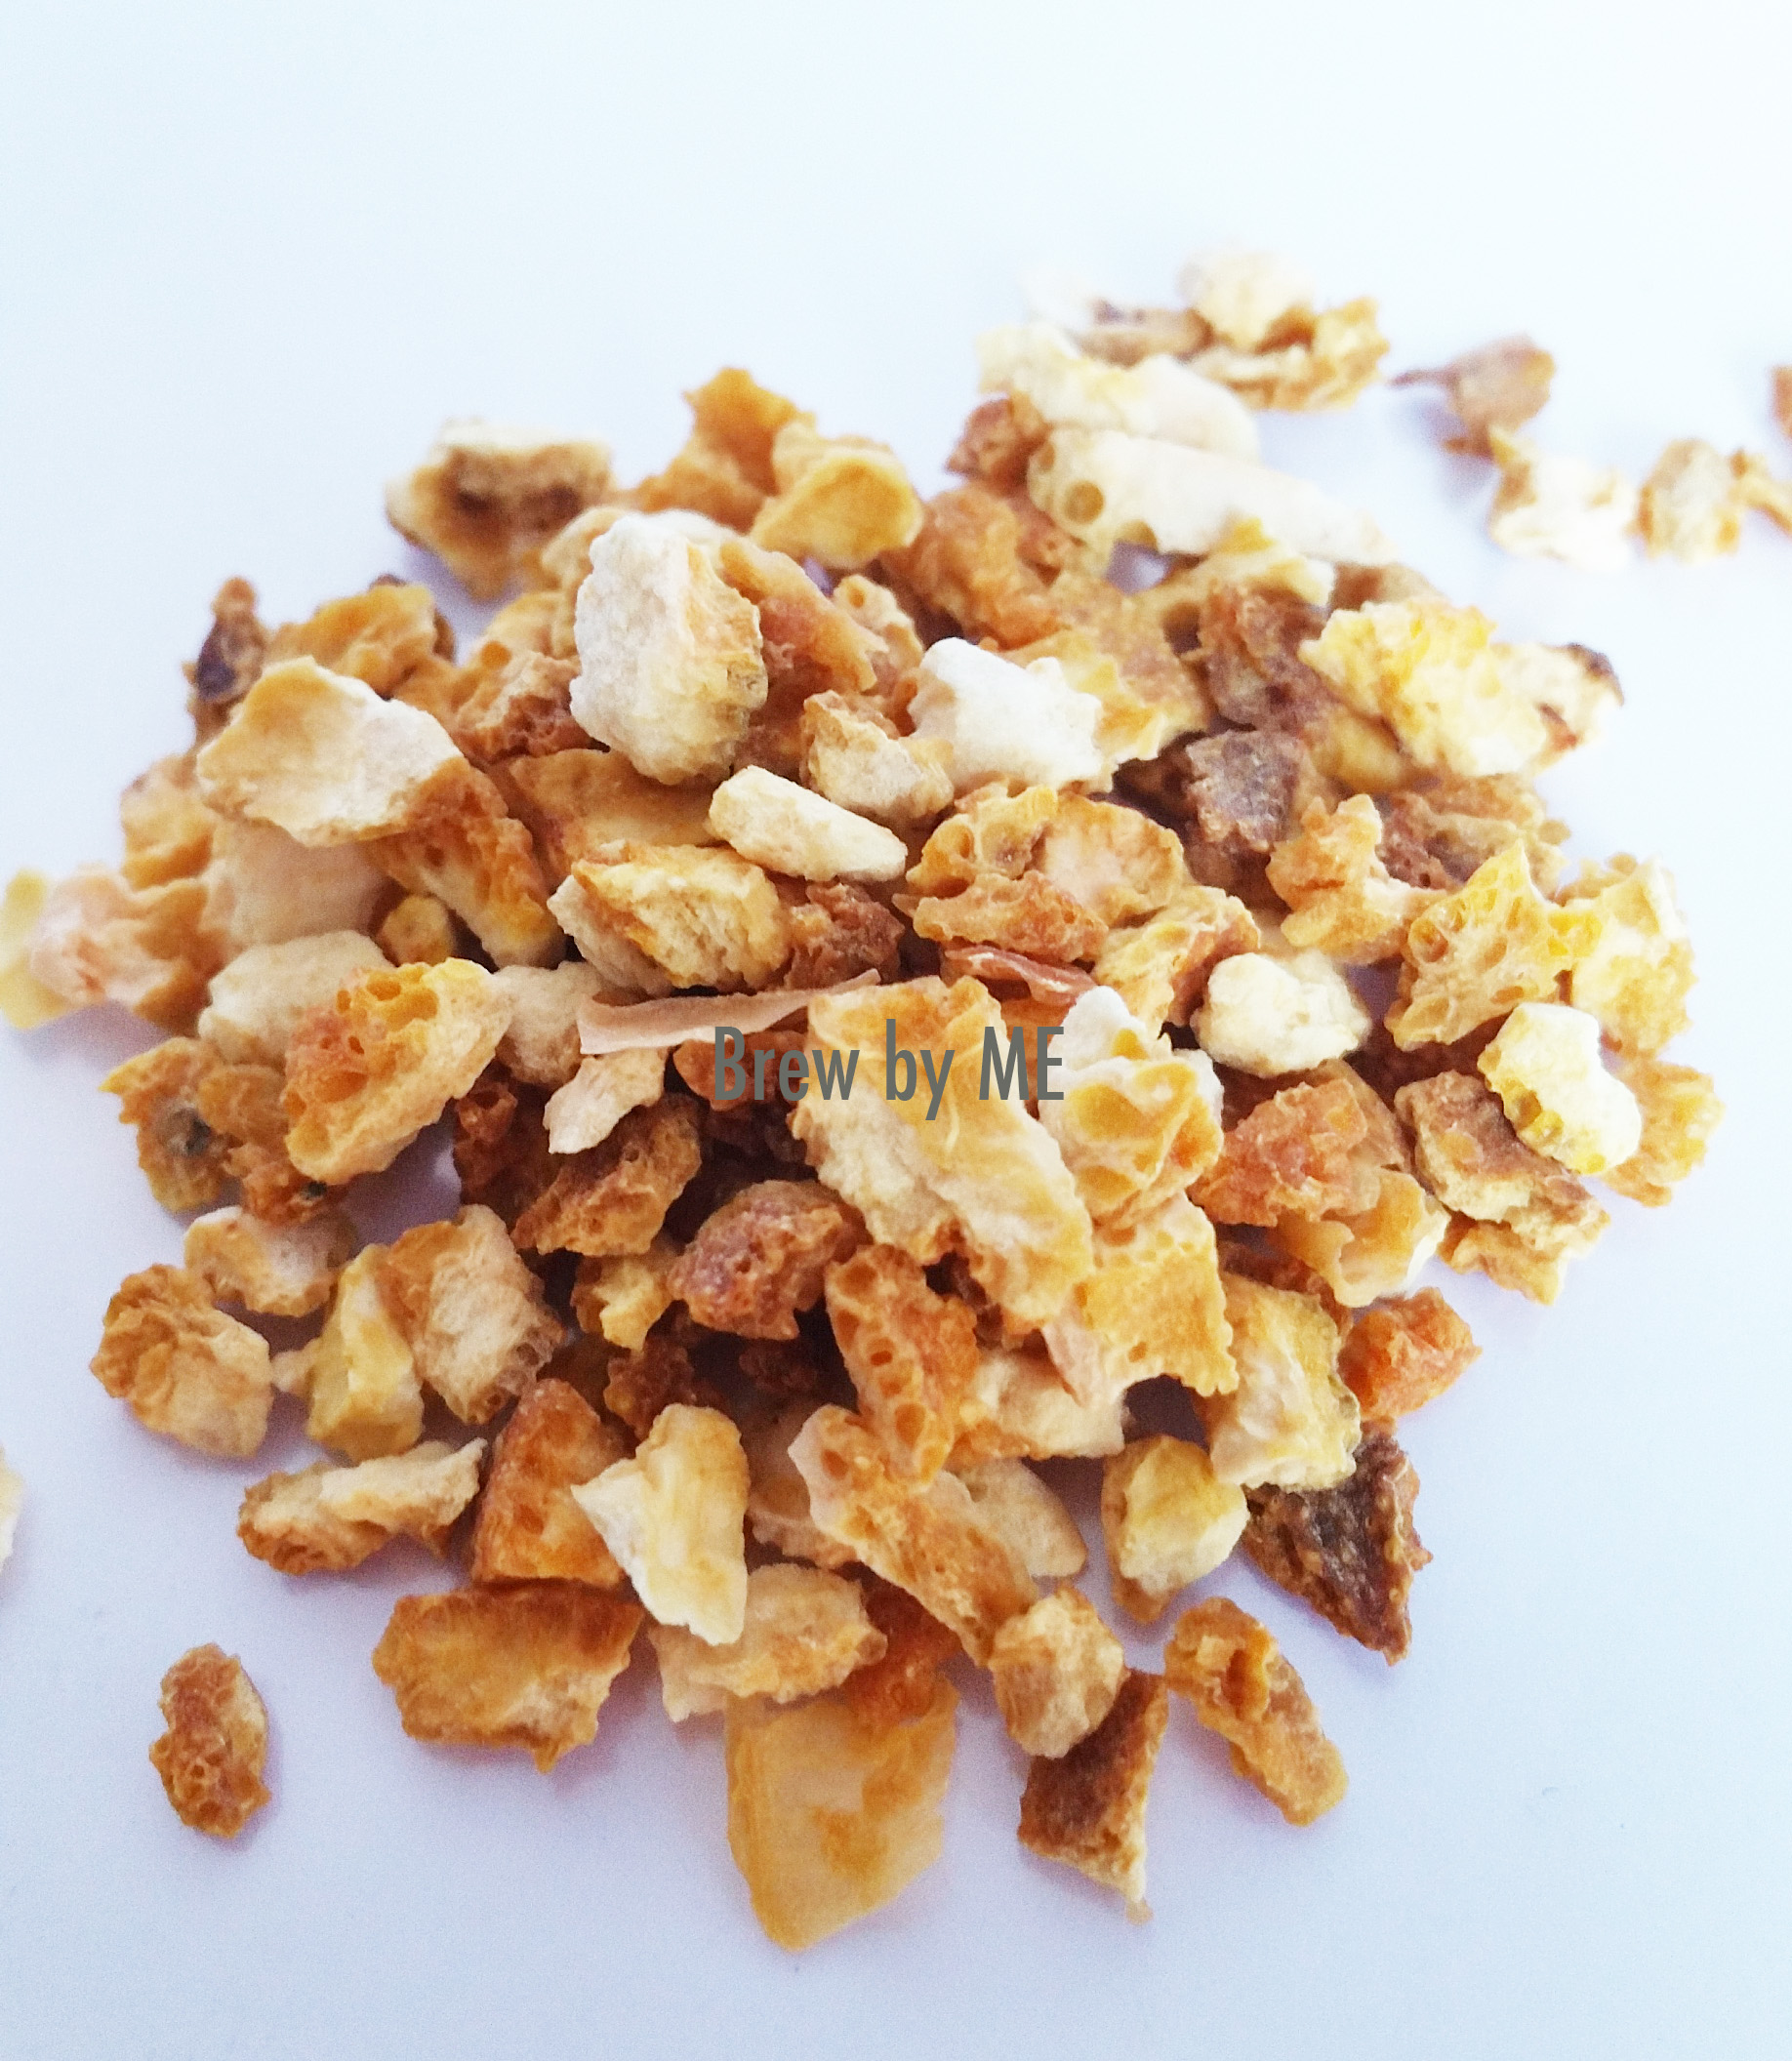 Sweet Orange Peel (1oz)